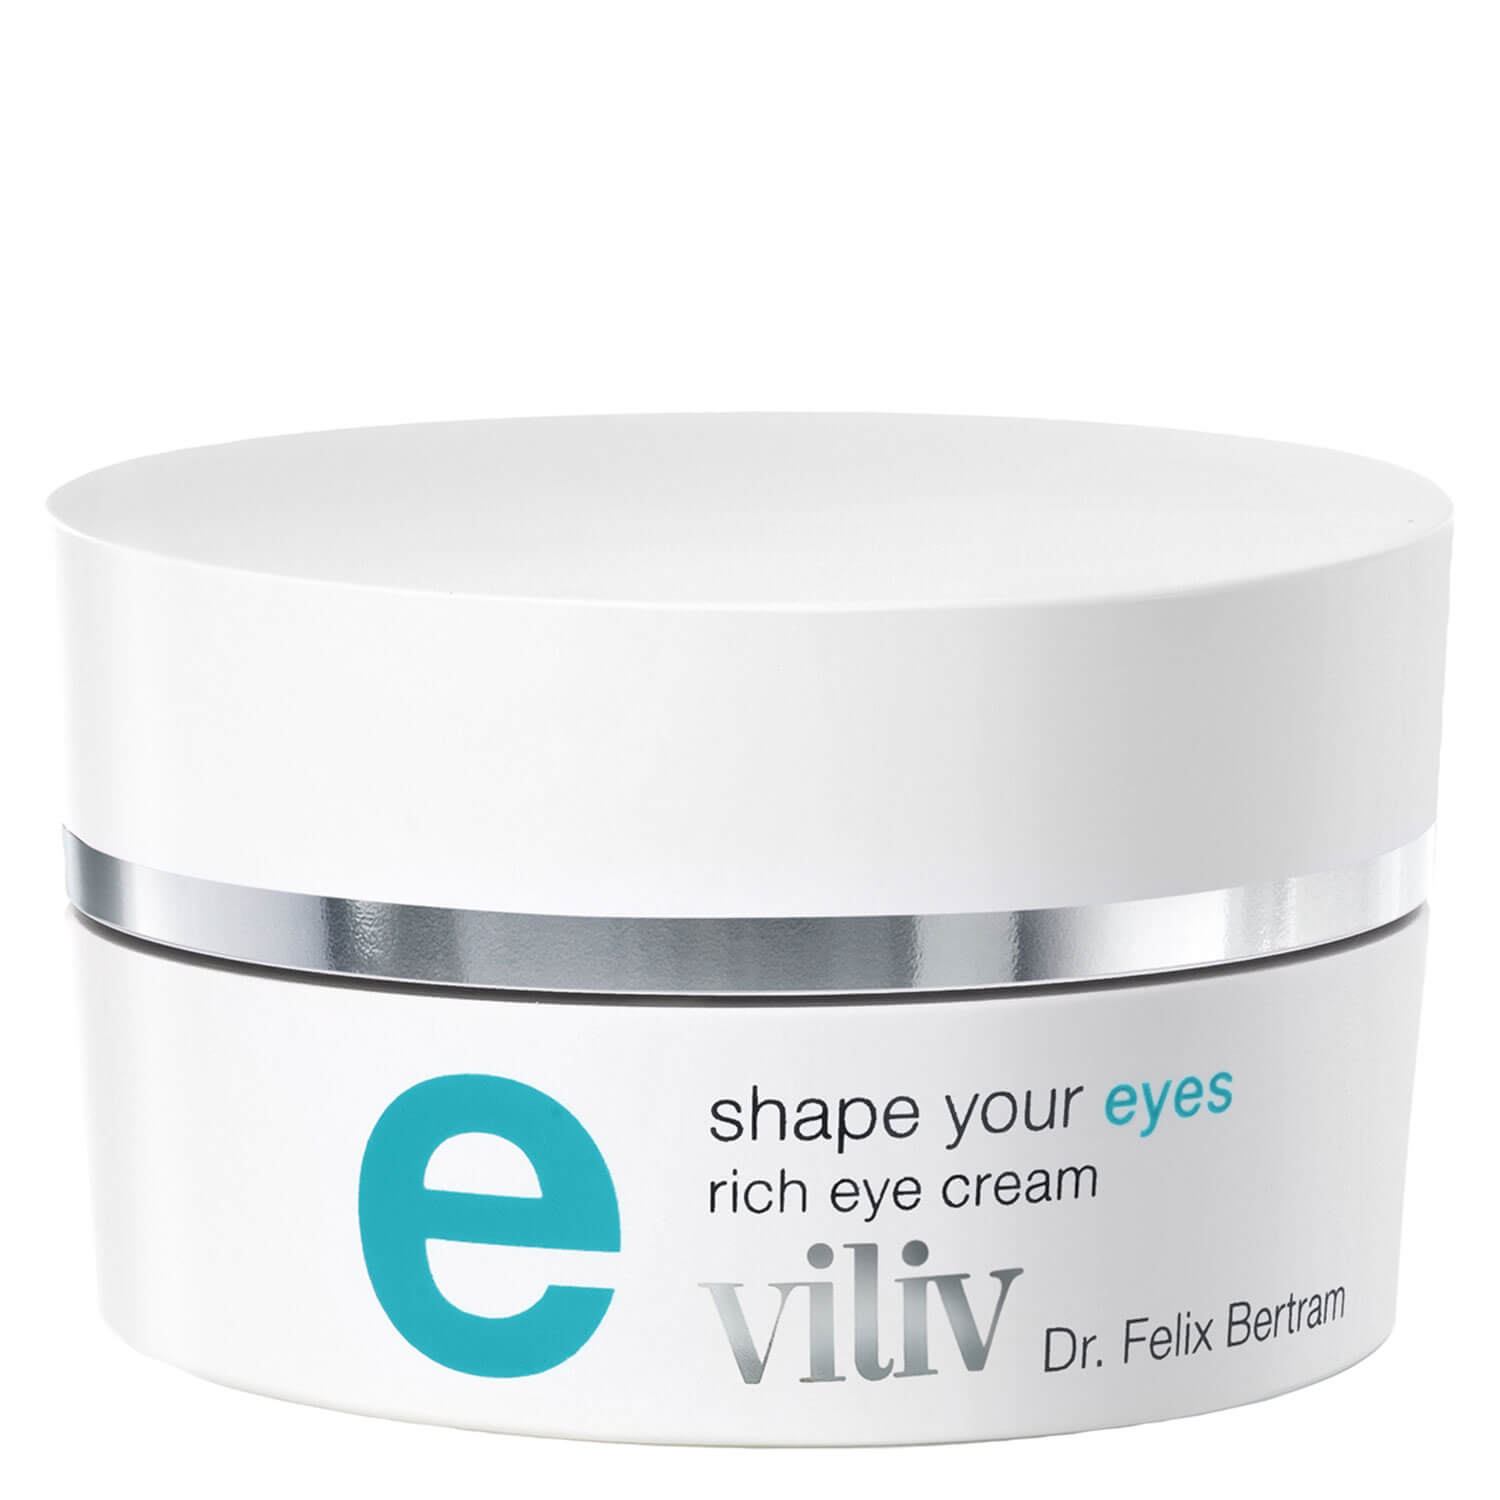 viliv - shape your eyes rich eye cream